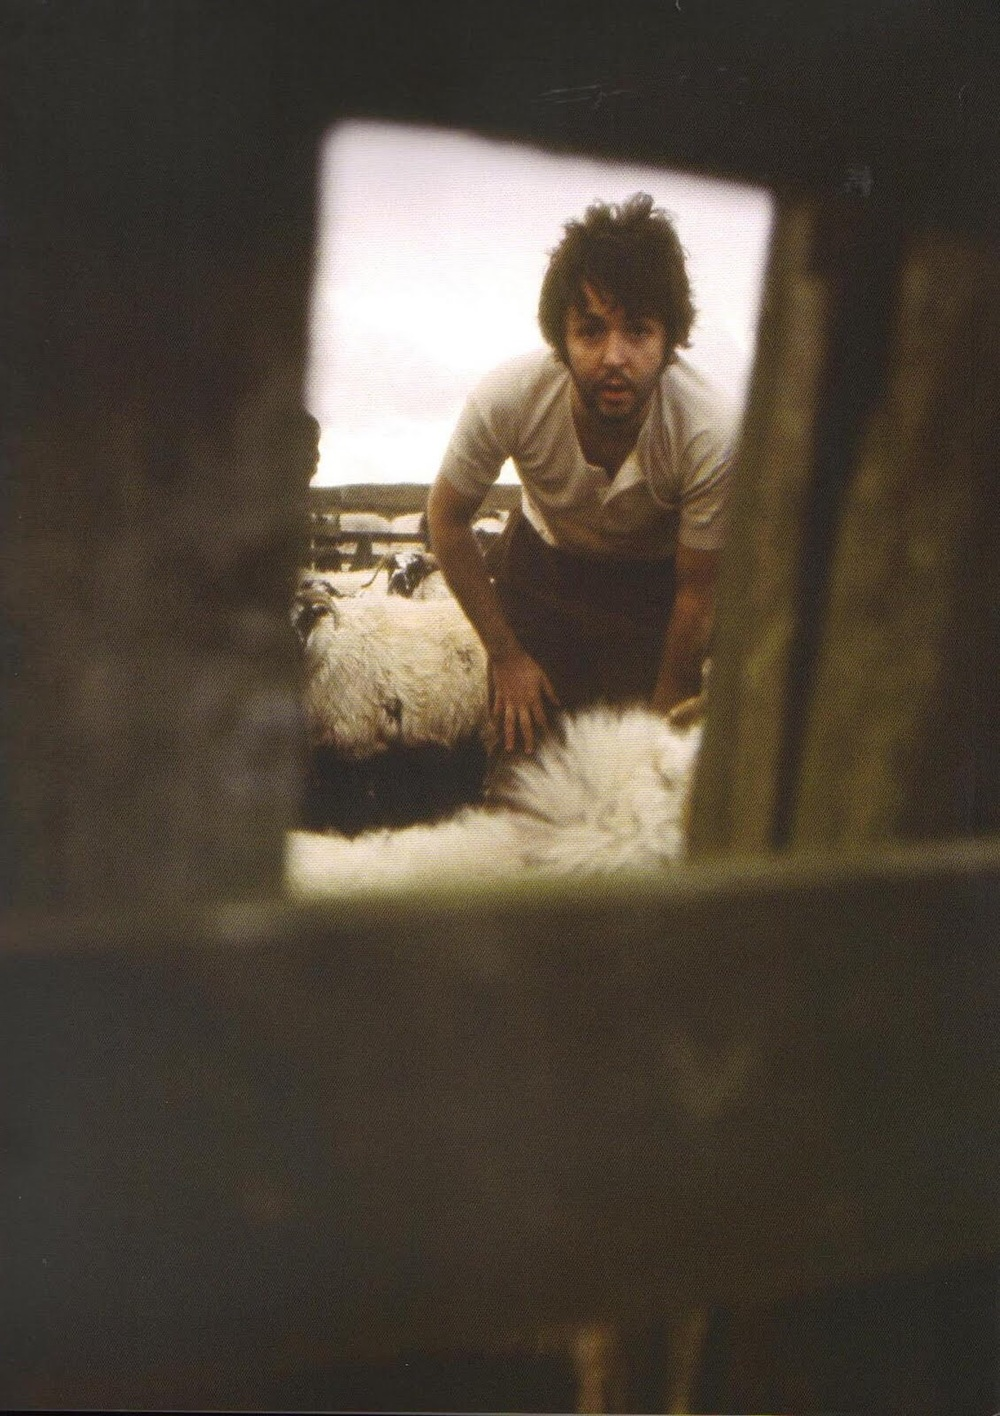 Paul McCartney at High Park Farm, circa 1969.